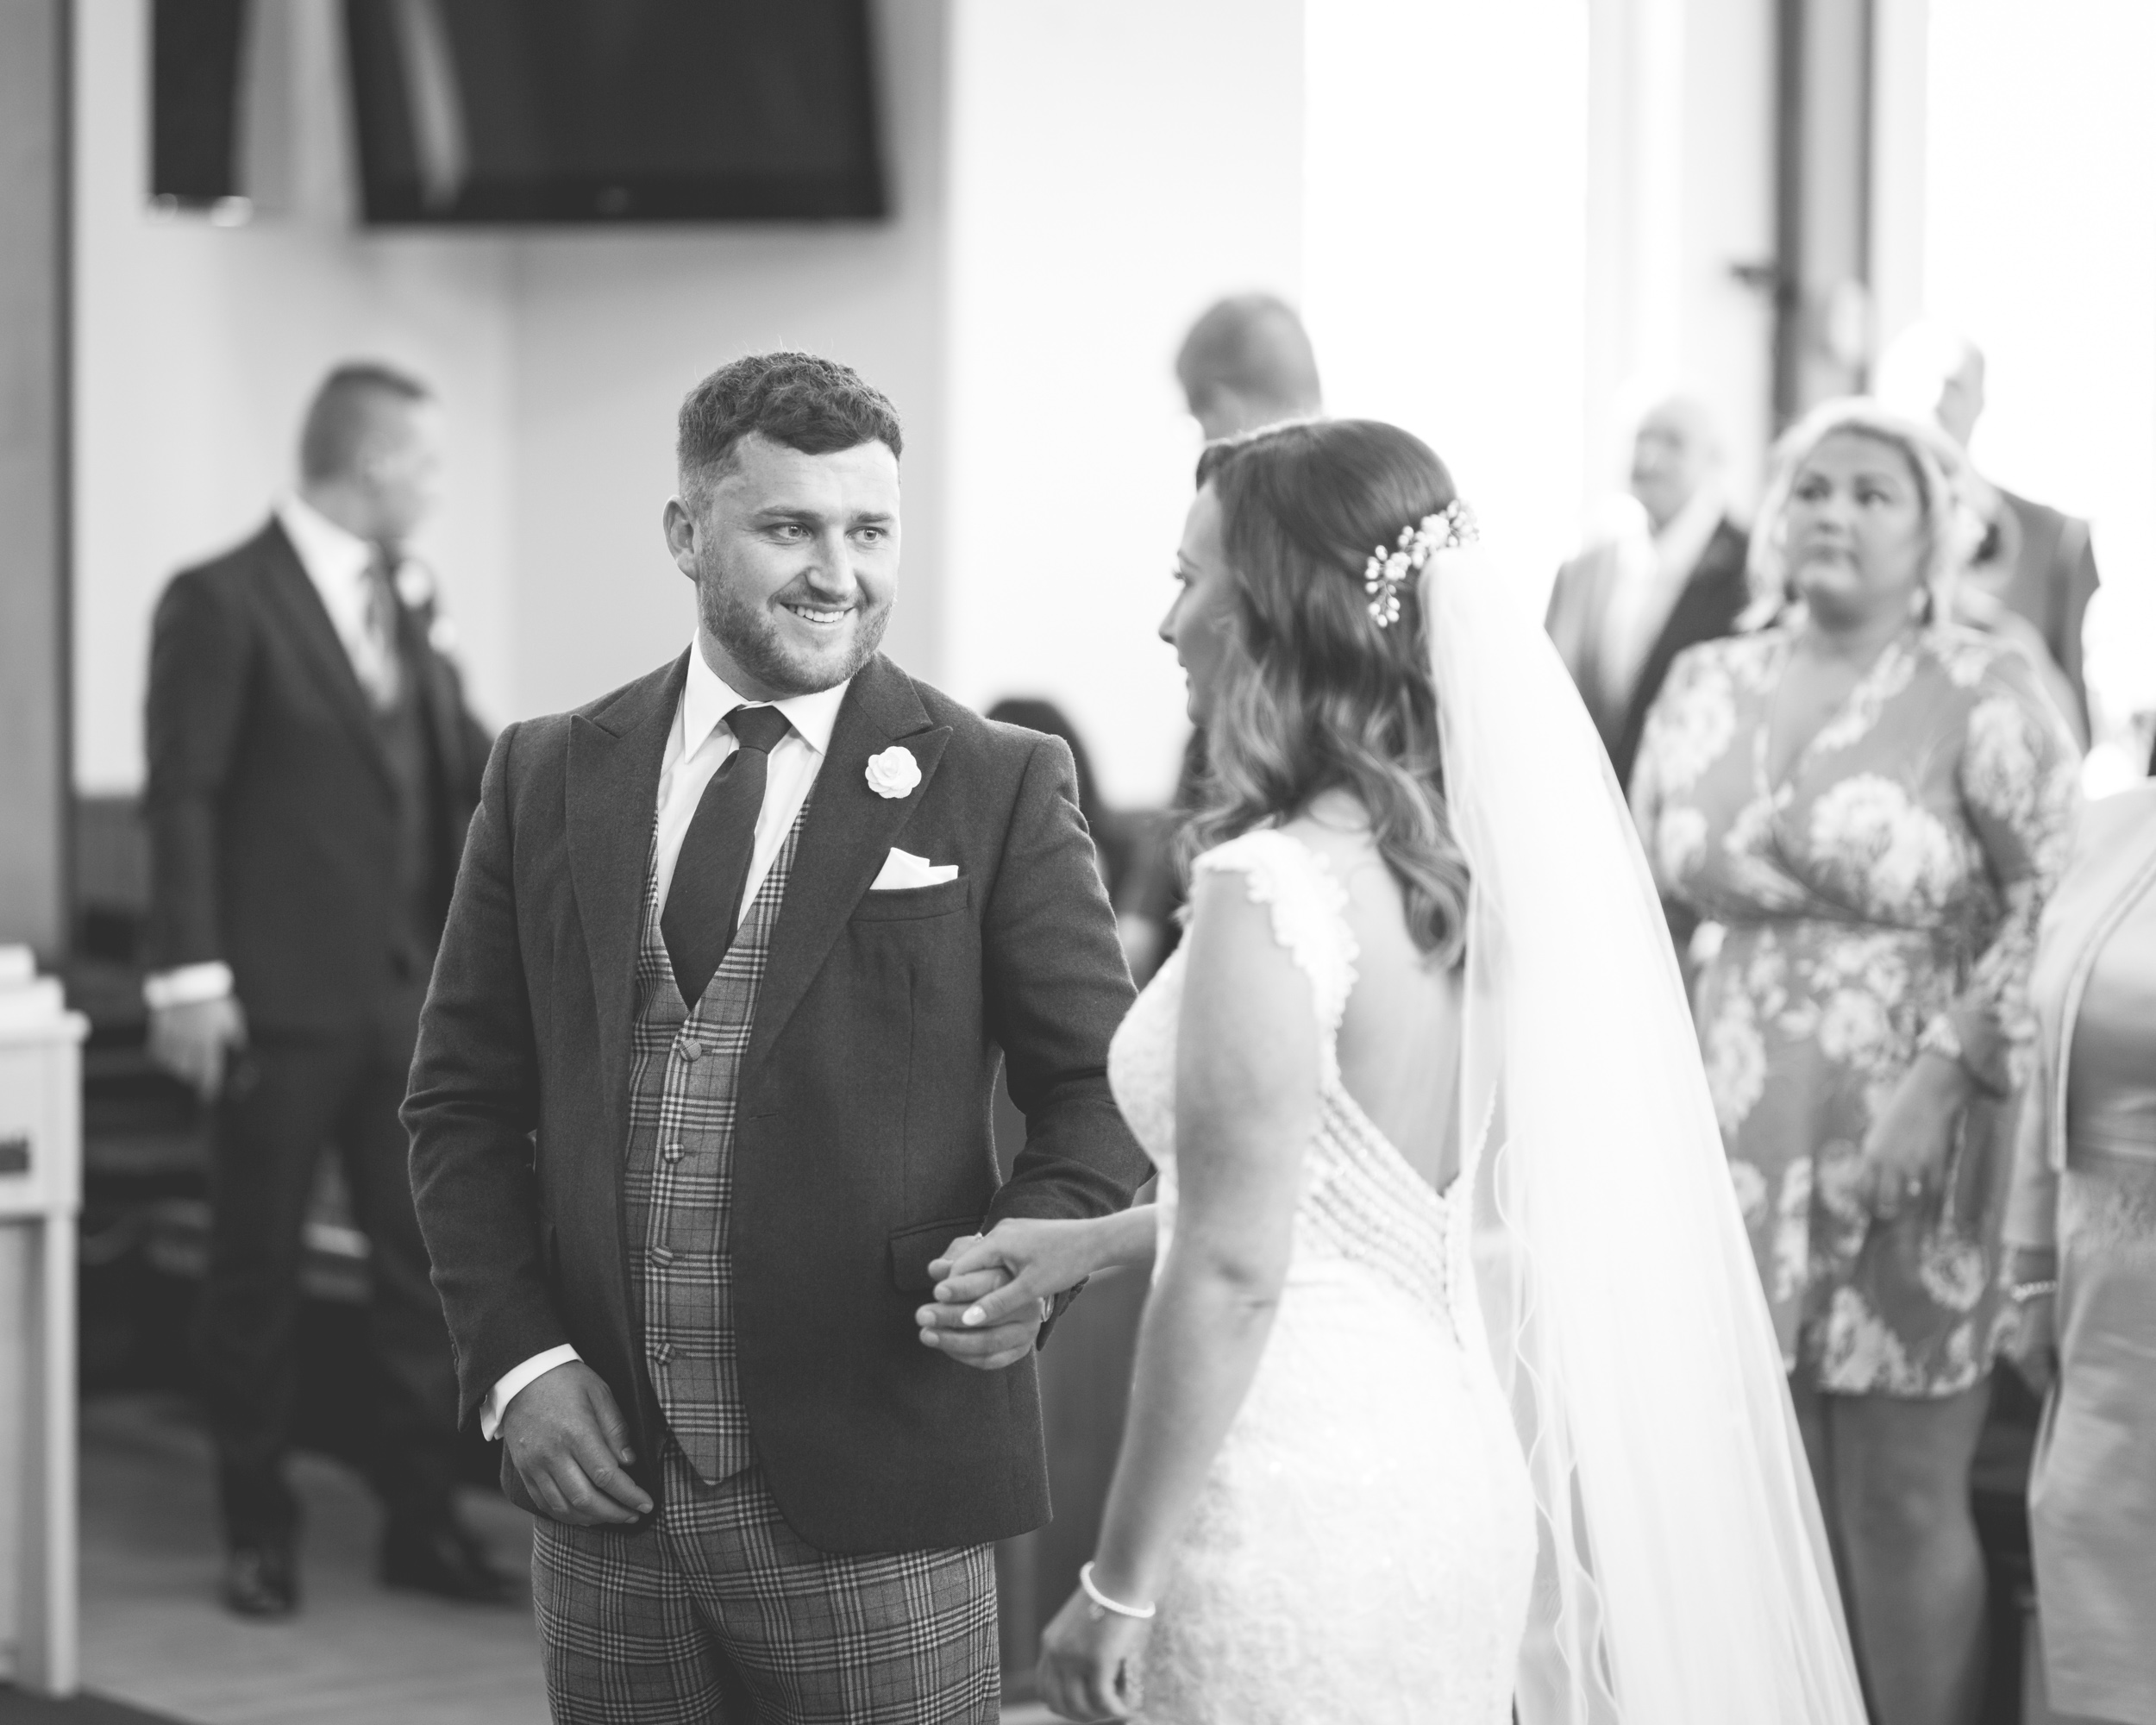 Brian McEwan | Northern Ireland Wedding Photographer | Rebecca & Michael | Ceremony-32.jpg